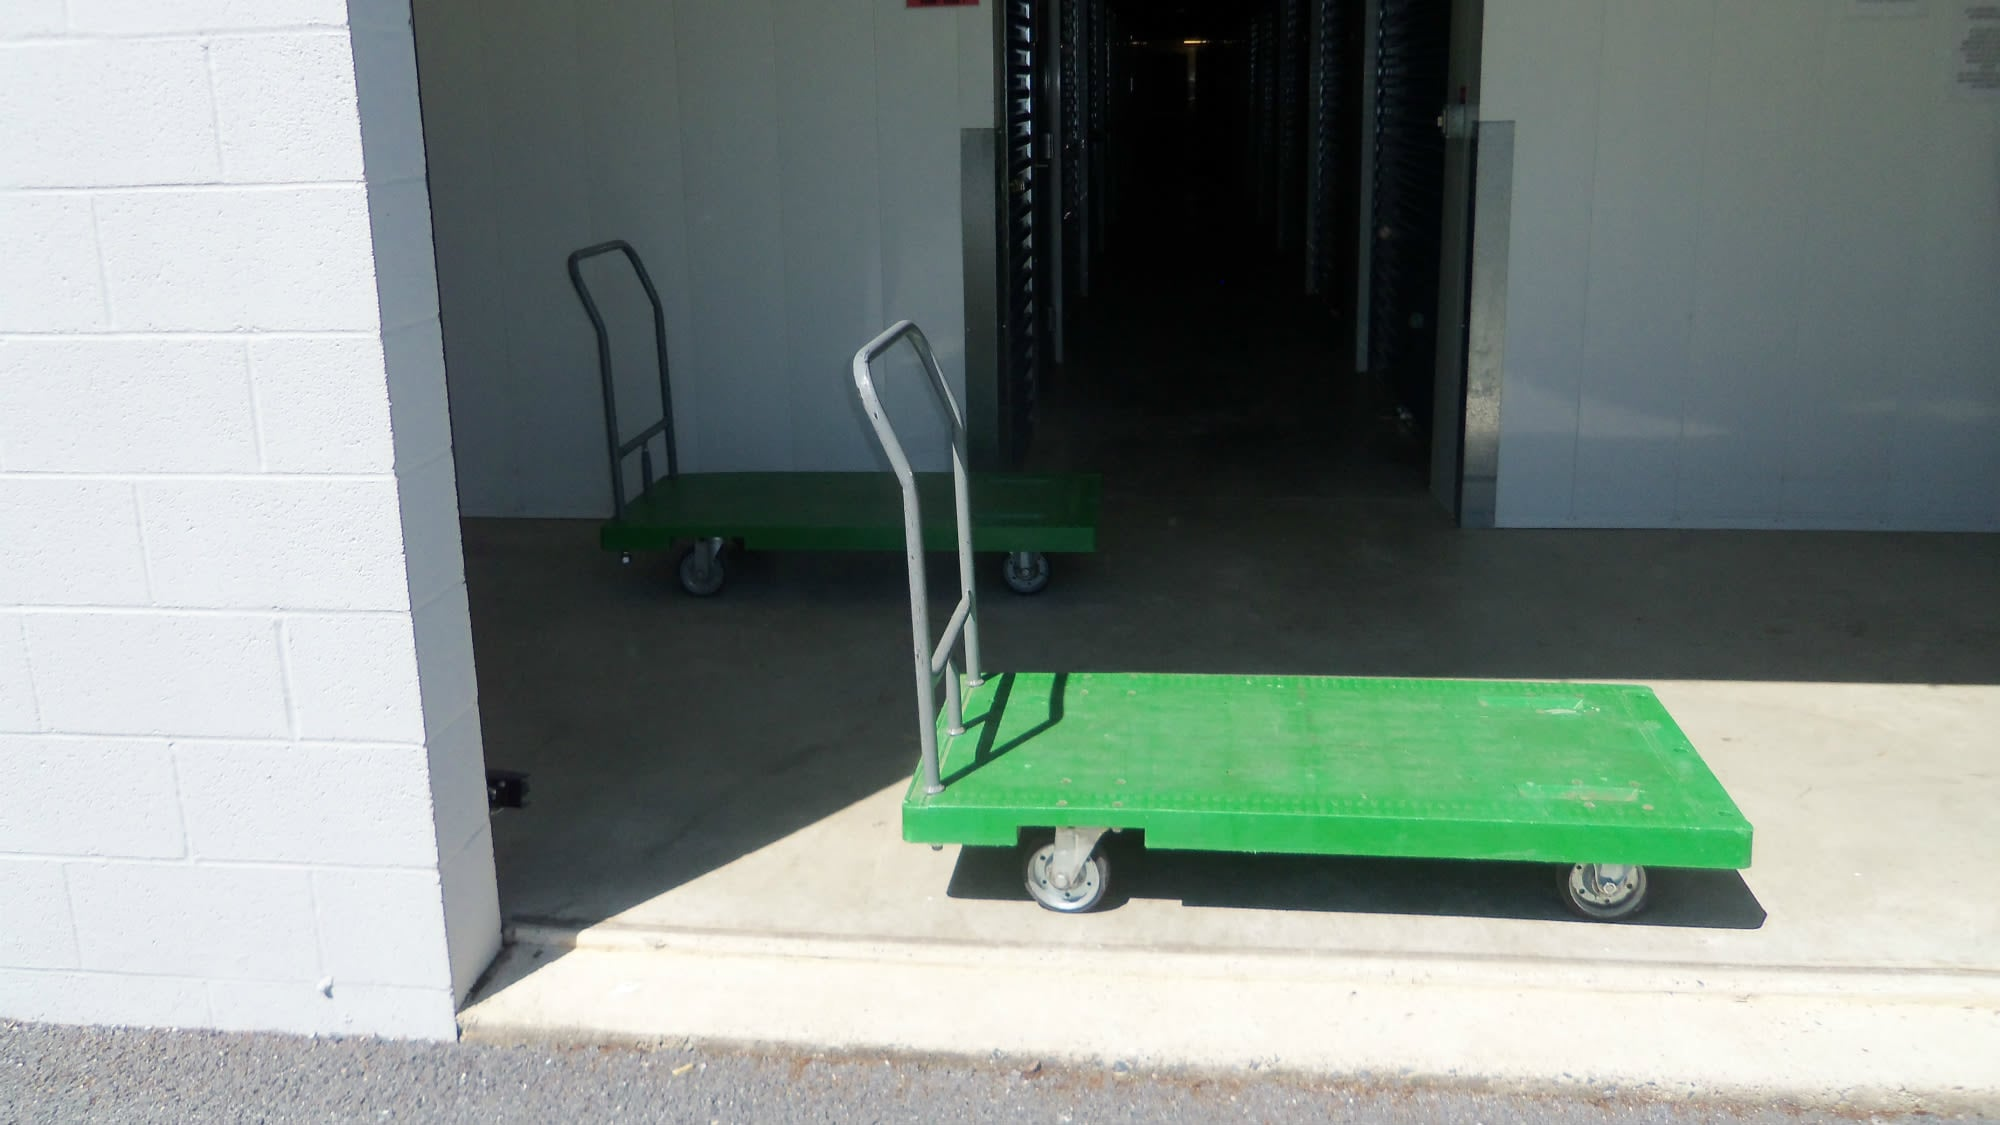 Carts available for use at Self Storage Plus in Walkersville, MD